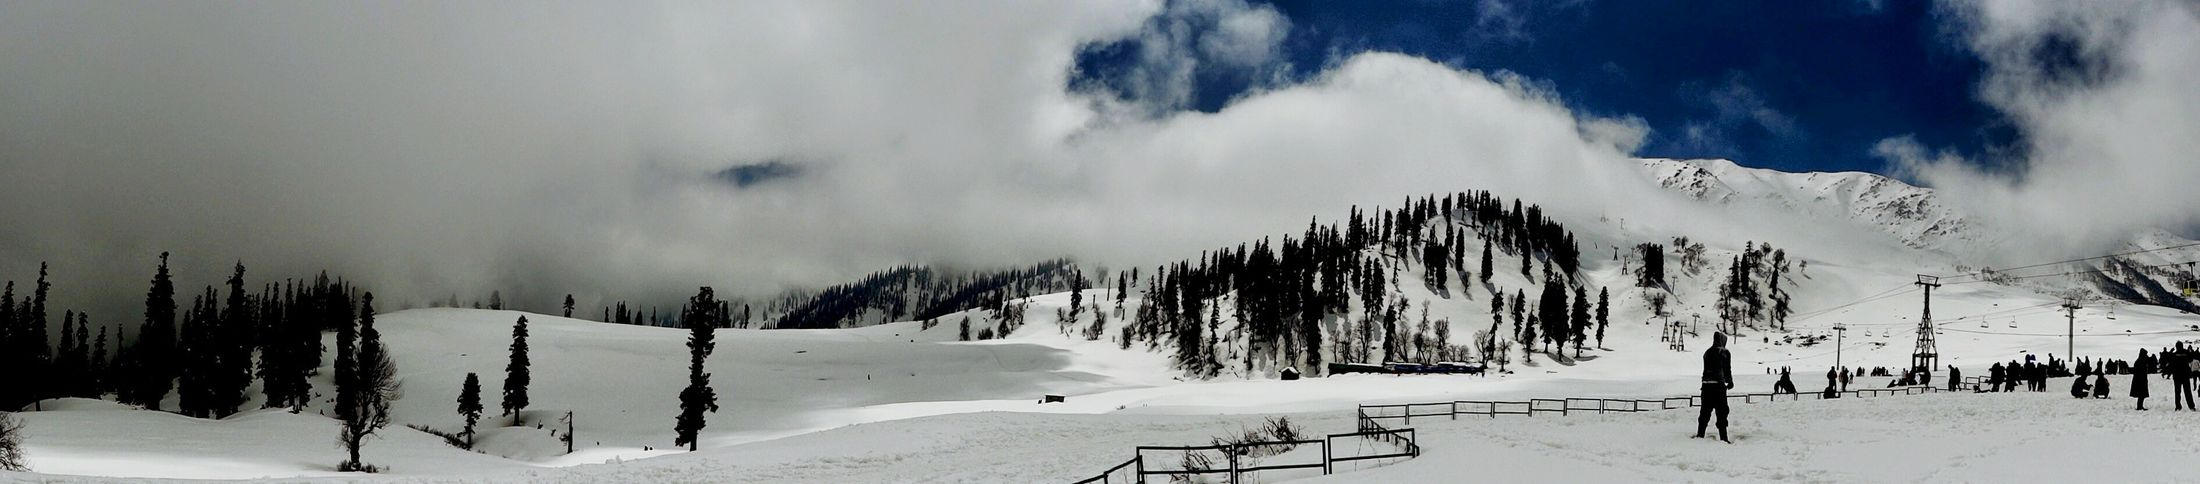 Snow Mountain Kashmir EyeEm Nature Lover Summertime Taking Photos Hanging Out Capturing Freedom Relaxing Beauty! Eye4photography